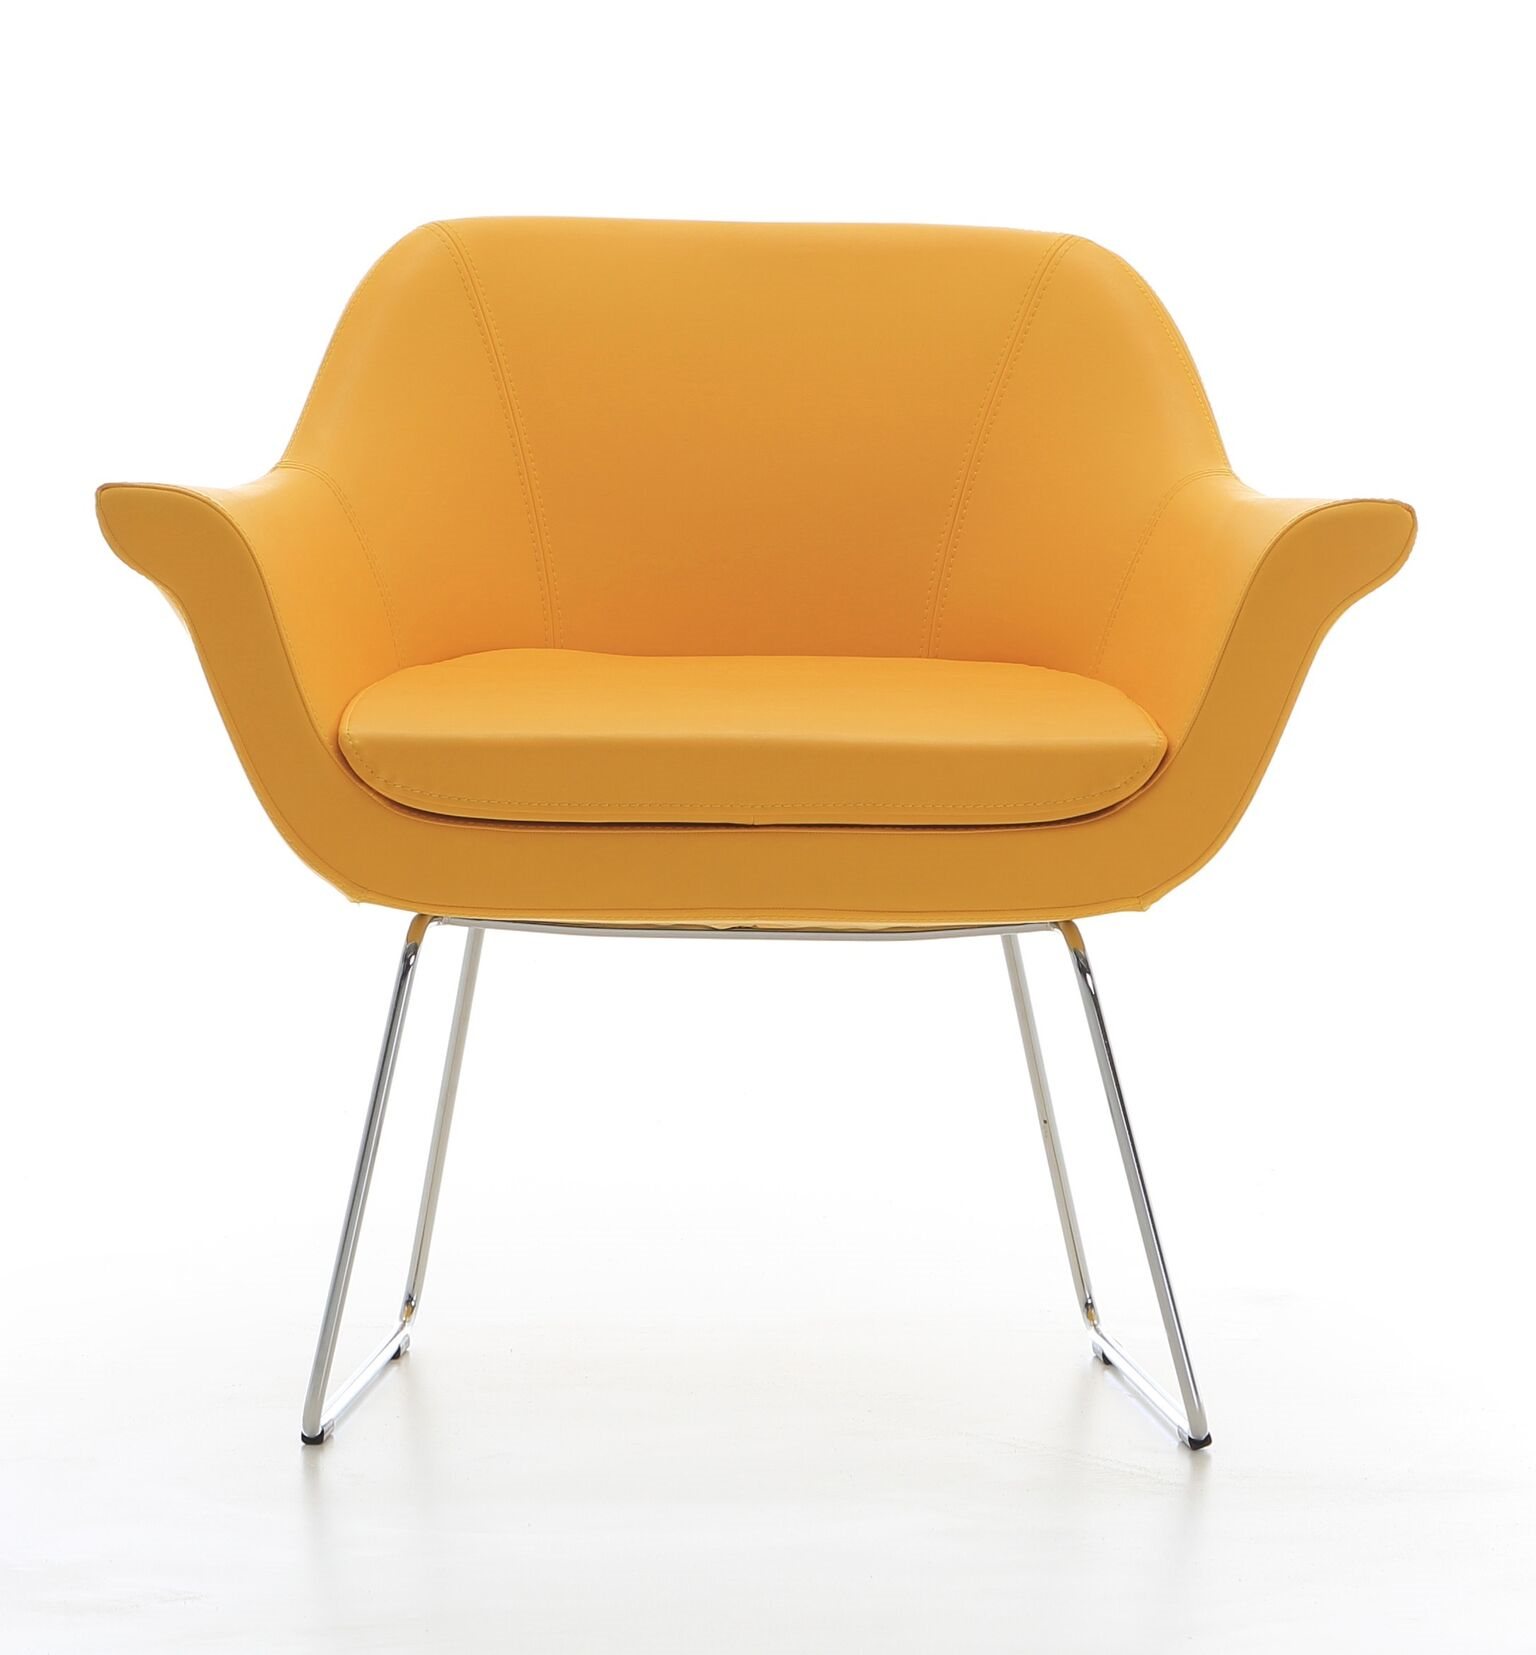 Locally Designed Affordable Sydney Furniture Products For Sale